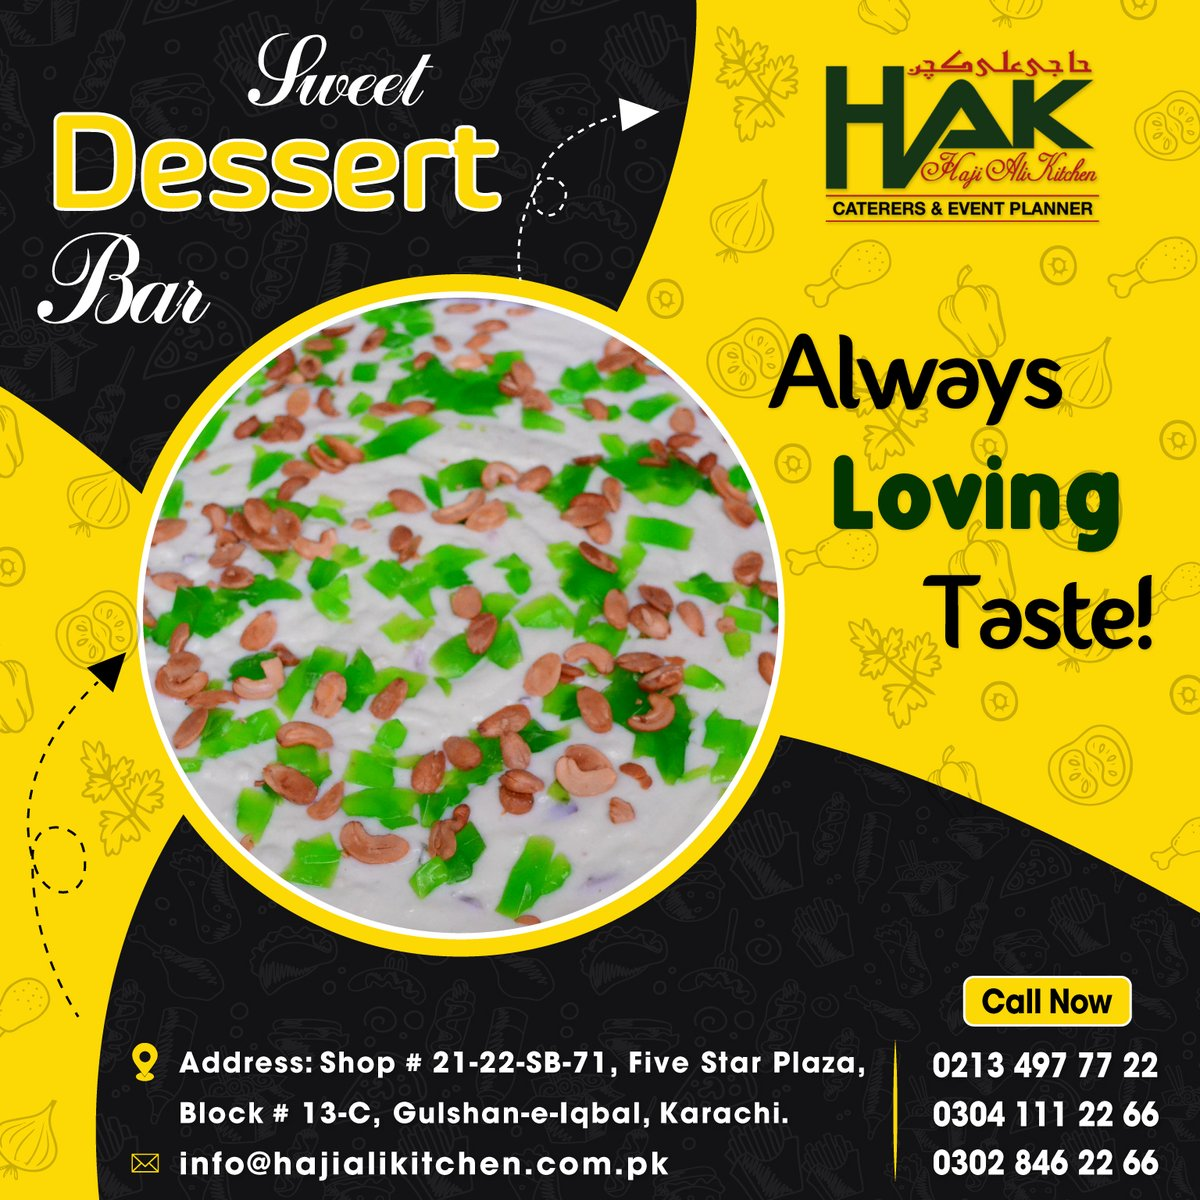 #HAK gives you Sweet Dessert for your special Occasion, Book your orders Call Now: 021-34977722, 0304-1112266, 0302-8462266 or visit: https://t.co/a1Z29kRIK8  #Tasteful #Dessert #Creamy #Events #Occasion #Party #Wedding #Specialty #Foodie #Quality_Food #FoodLover #Catering https://t.co/8WFYURUvcN